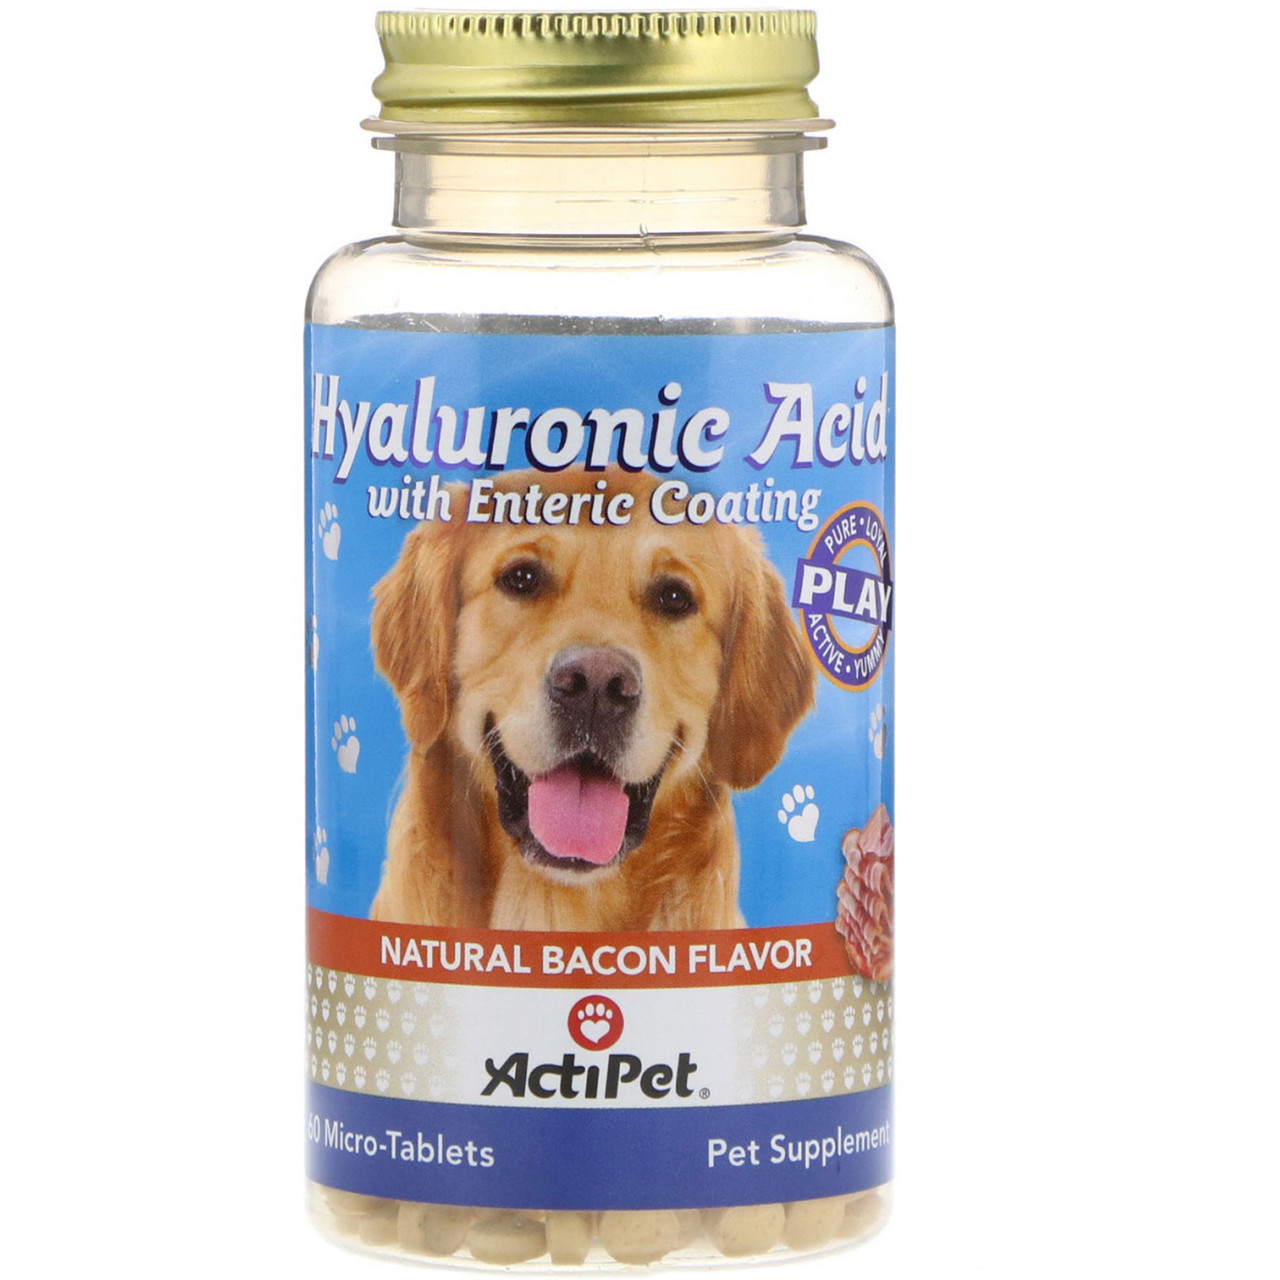 Actipet, Hyaluronic Acid for Dogs, Natural Cheddar Cheese Flavor, 60 Micro-Tablets